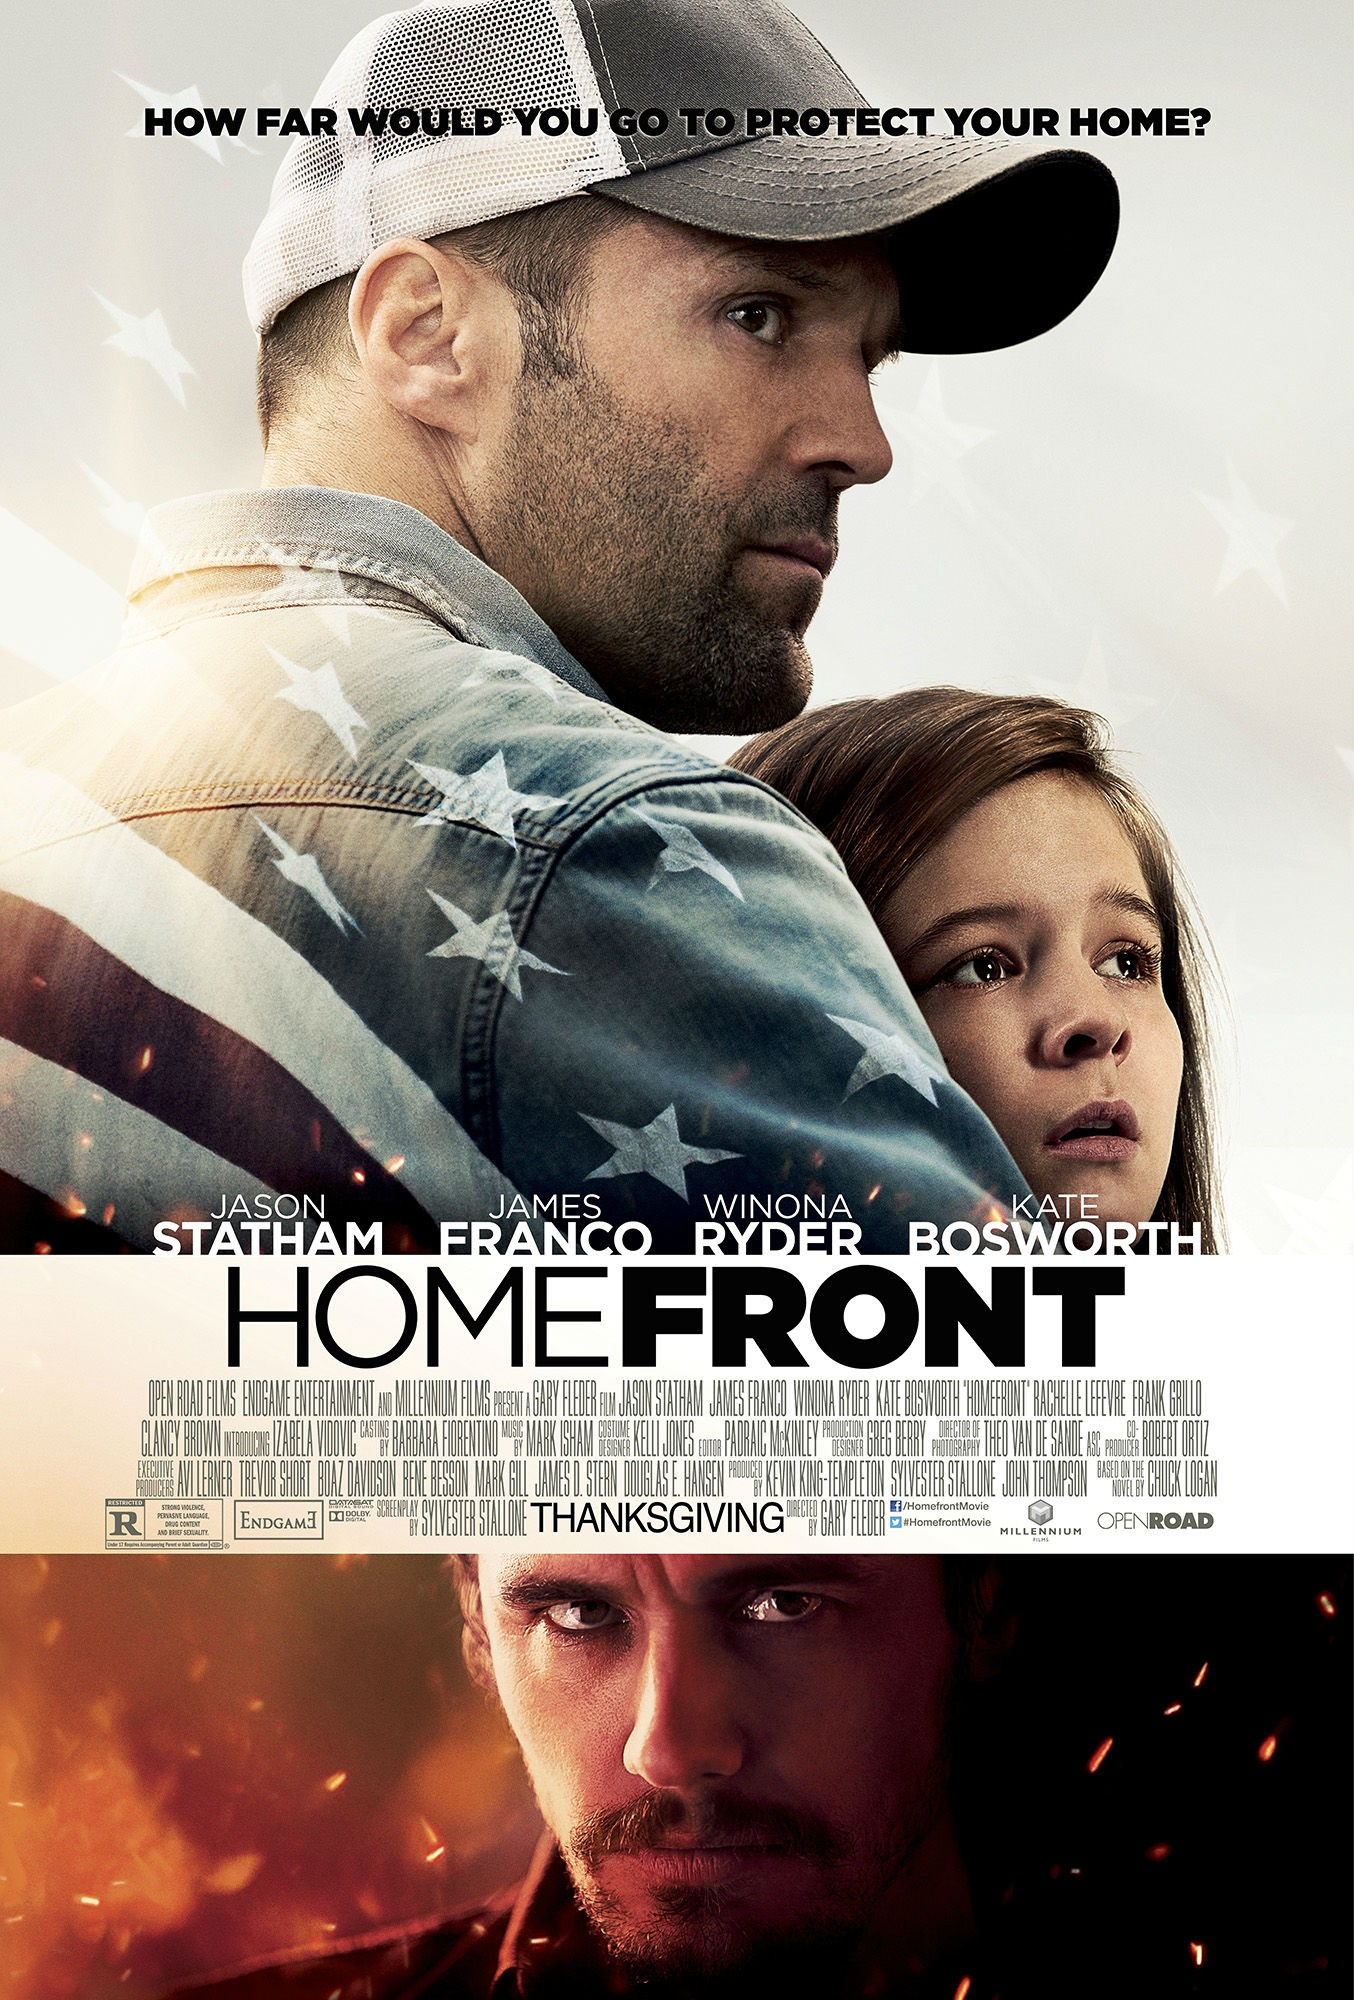 Homefront-Official Poster Banner PROMO POSTER-10SETEMBRO2013